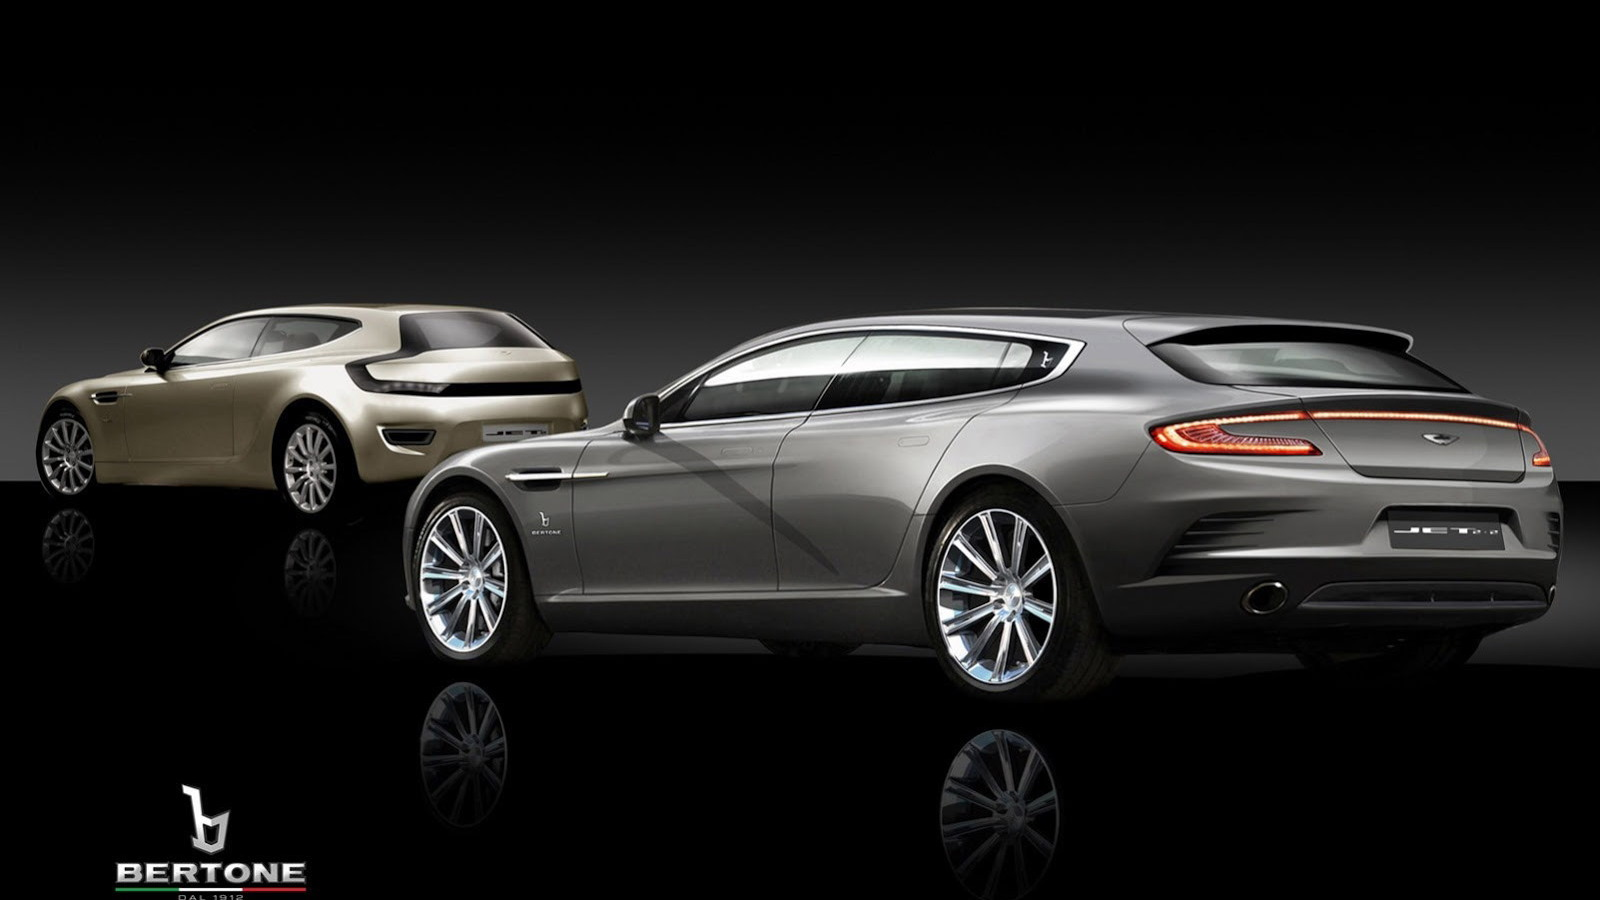 Bertone Jet 2 and Bertone Jet 2+2 concept cars